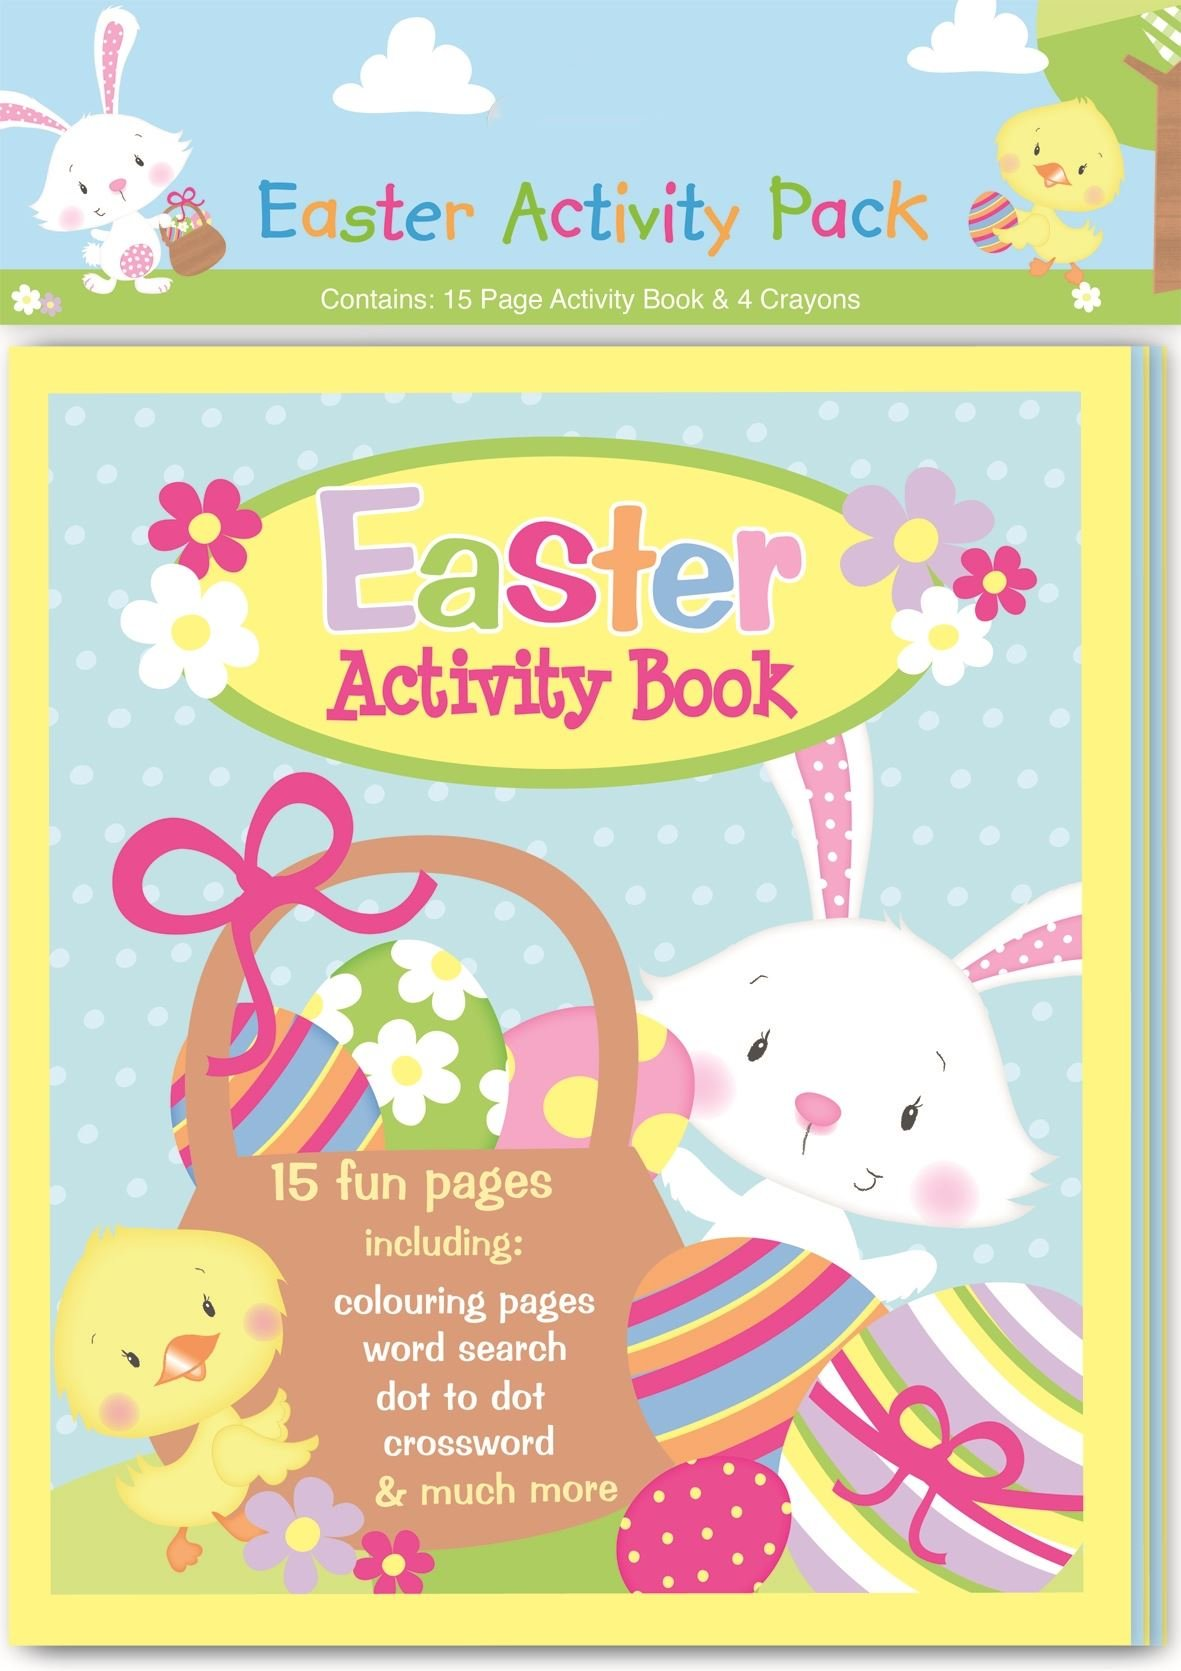 Easter presents for children amazon easter activity crayons set colouring book kid child fun gift pages present favour party exercise travel negle Choice Image